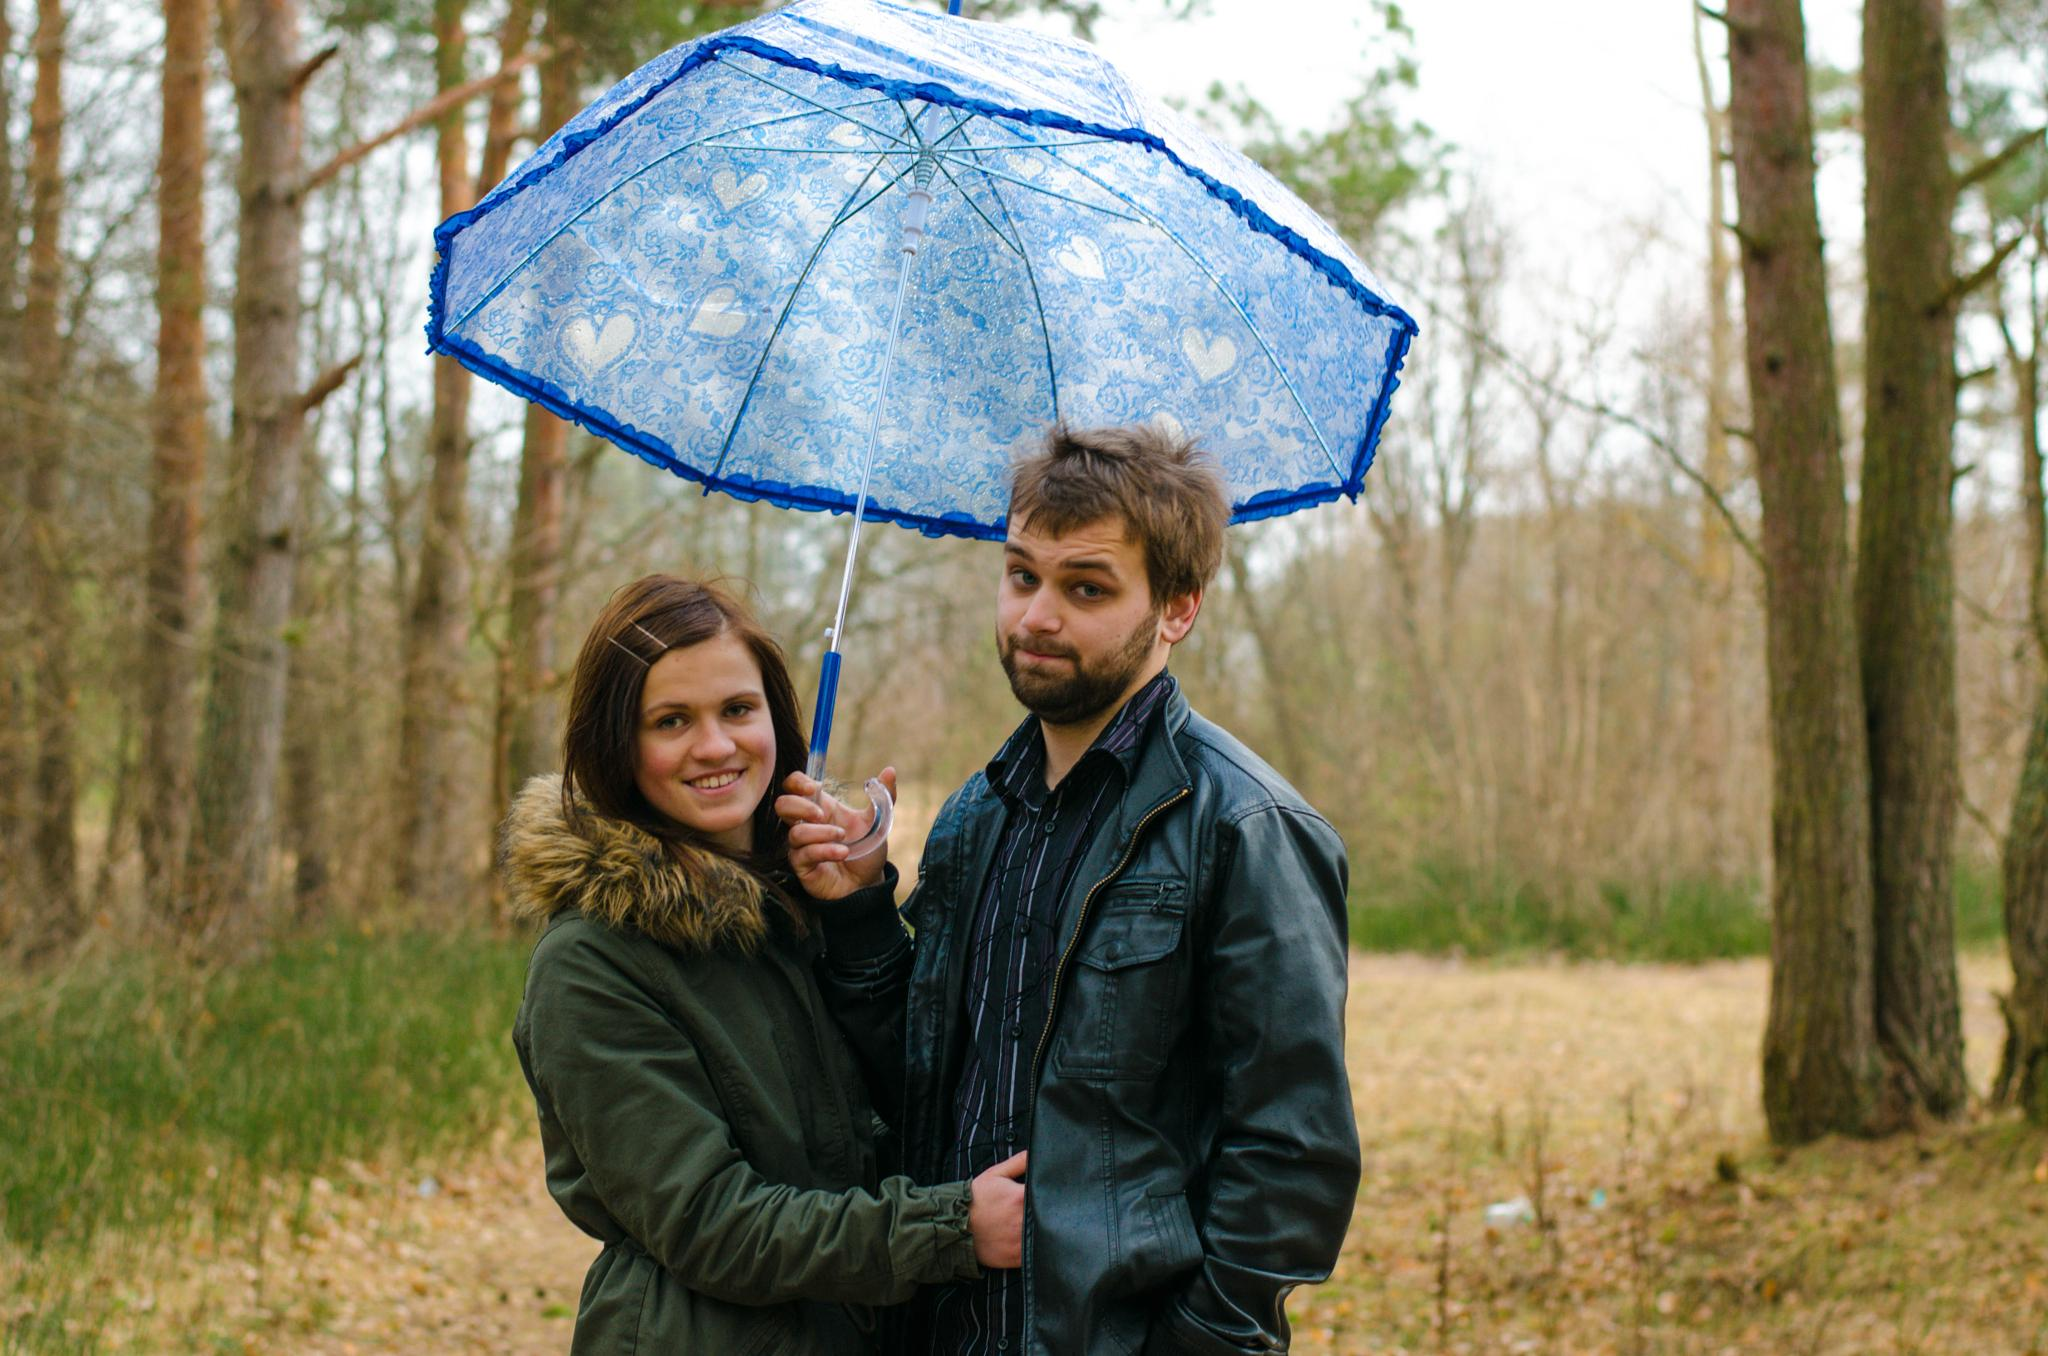 Karina&Reinis by Kristers Knospins